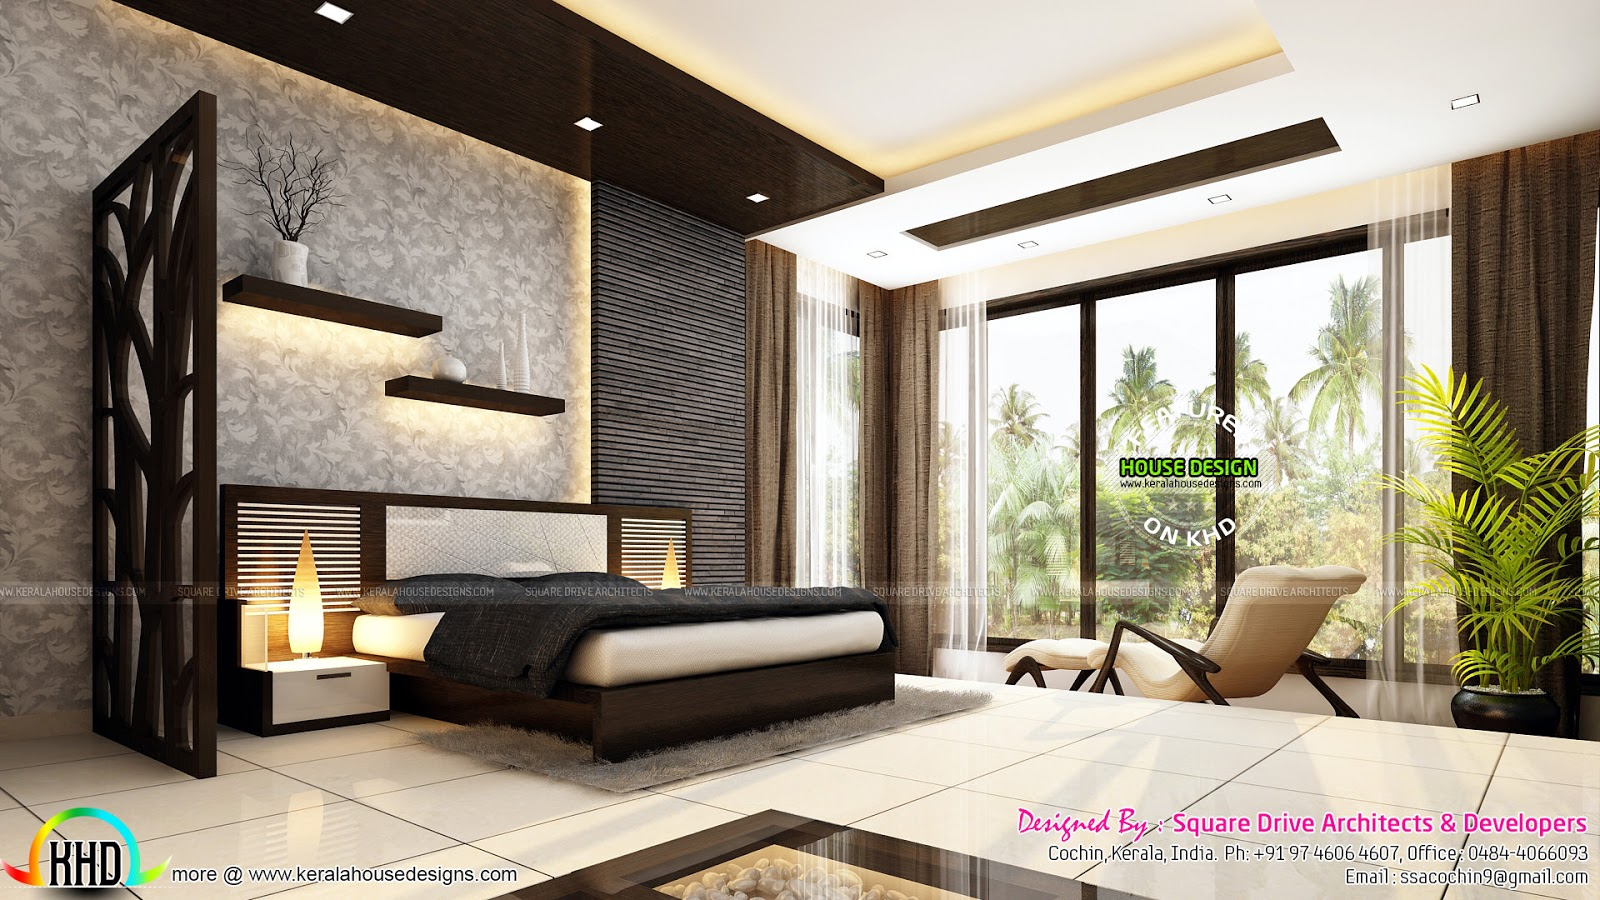 Very beautiful modern interior designs kerala home for Beautiful interior designs of houses